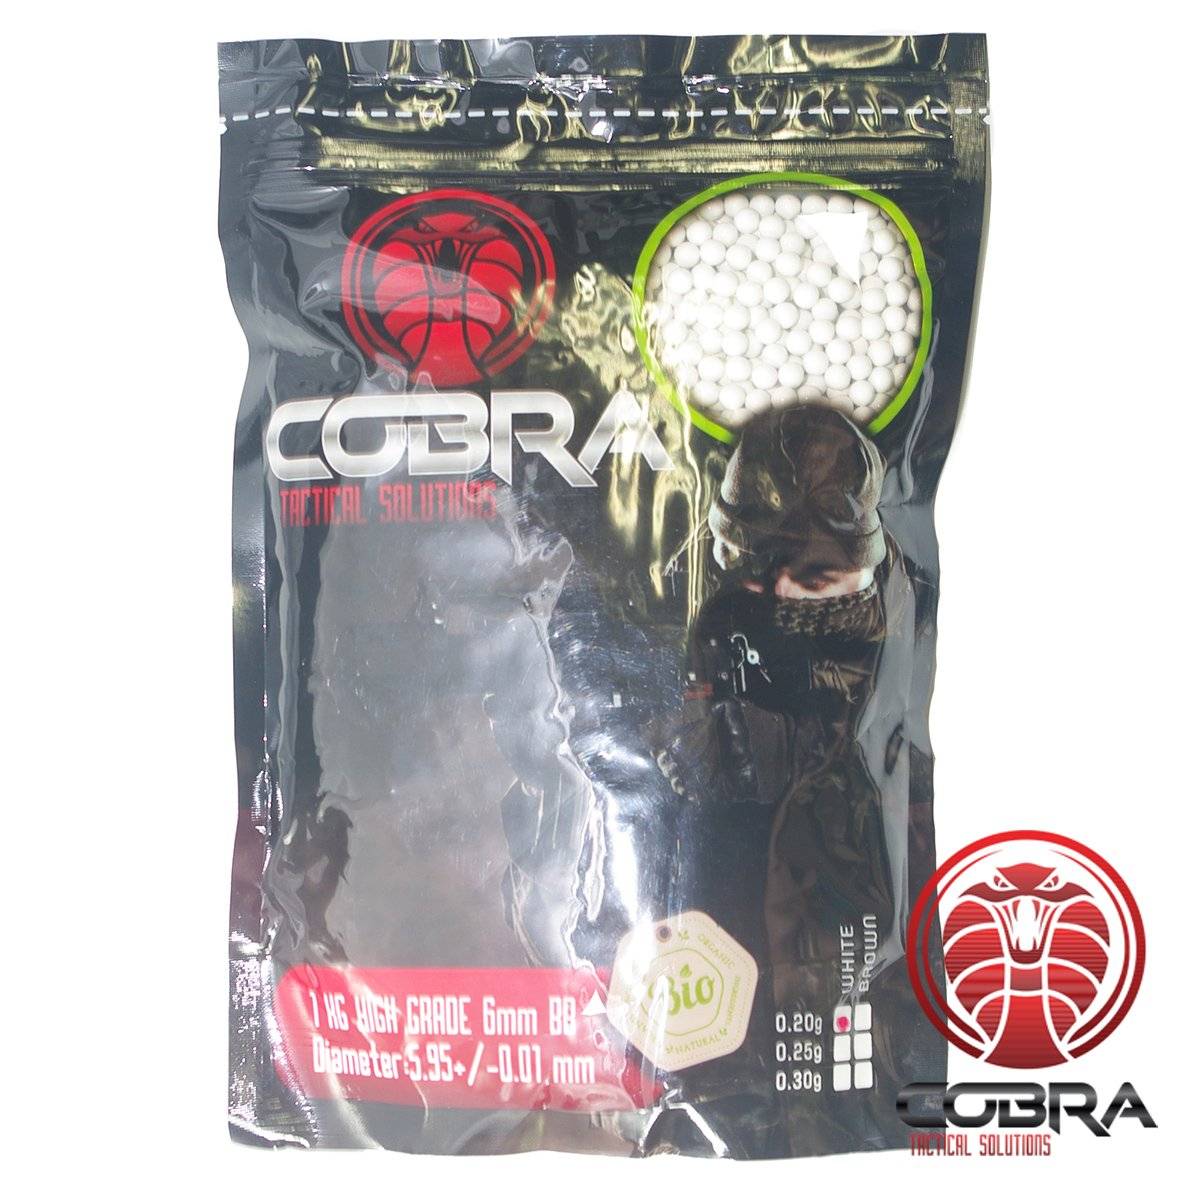 Cobra Tactical Solutions Billes BB Airsoft de Haute qualité Bio Blanche 0, 20g Sac de 1 kg - 6mm 5000BBs